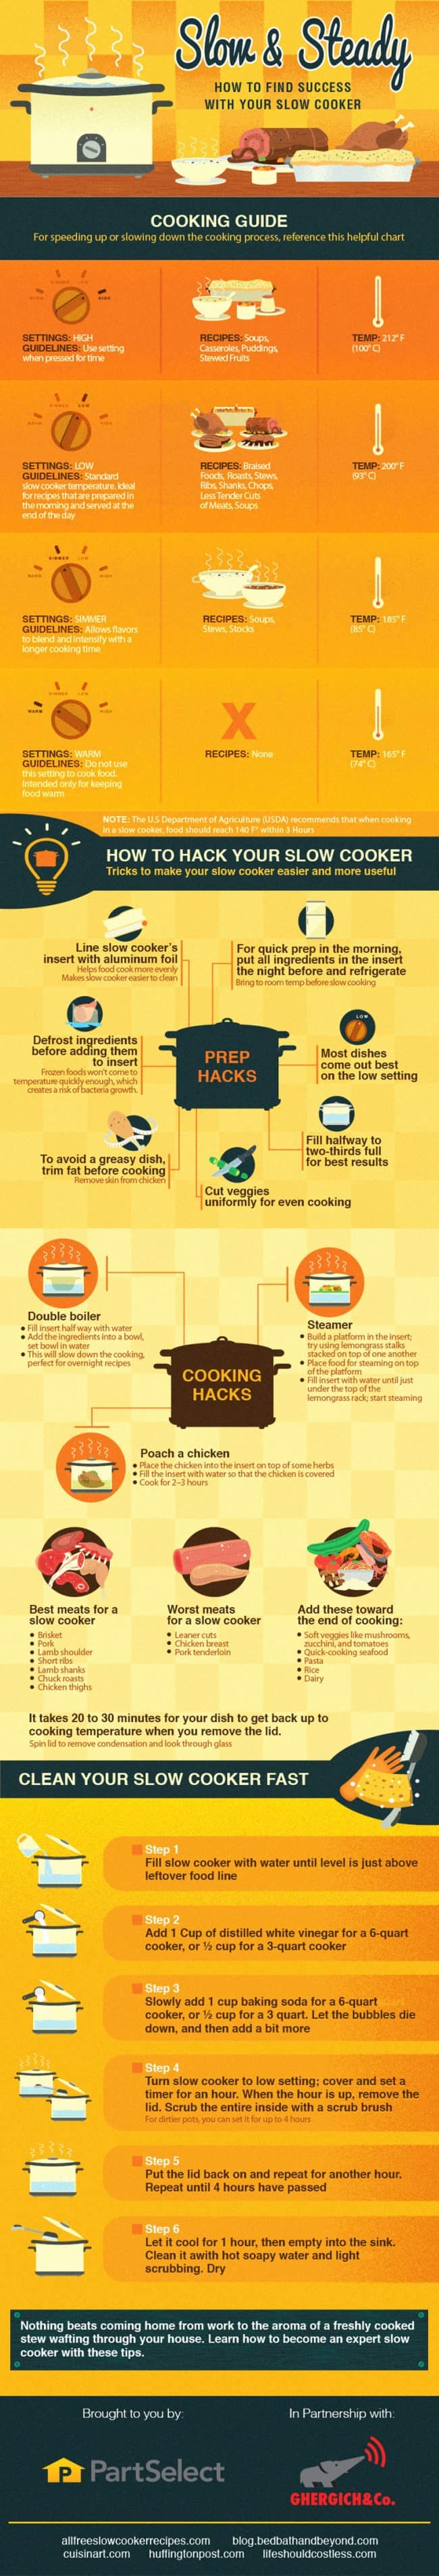 Slow and Steady Slow Cooker Success Infographic